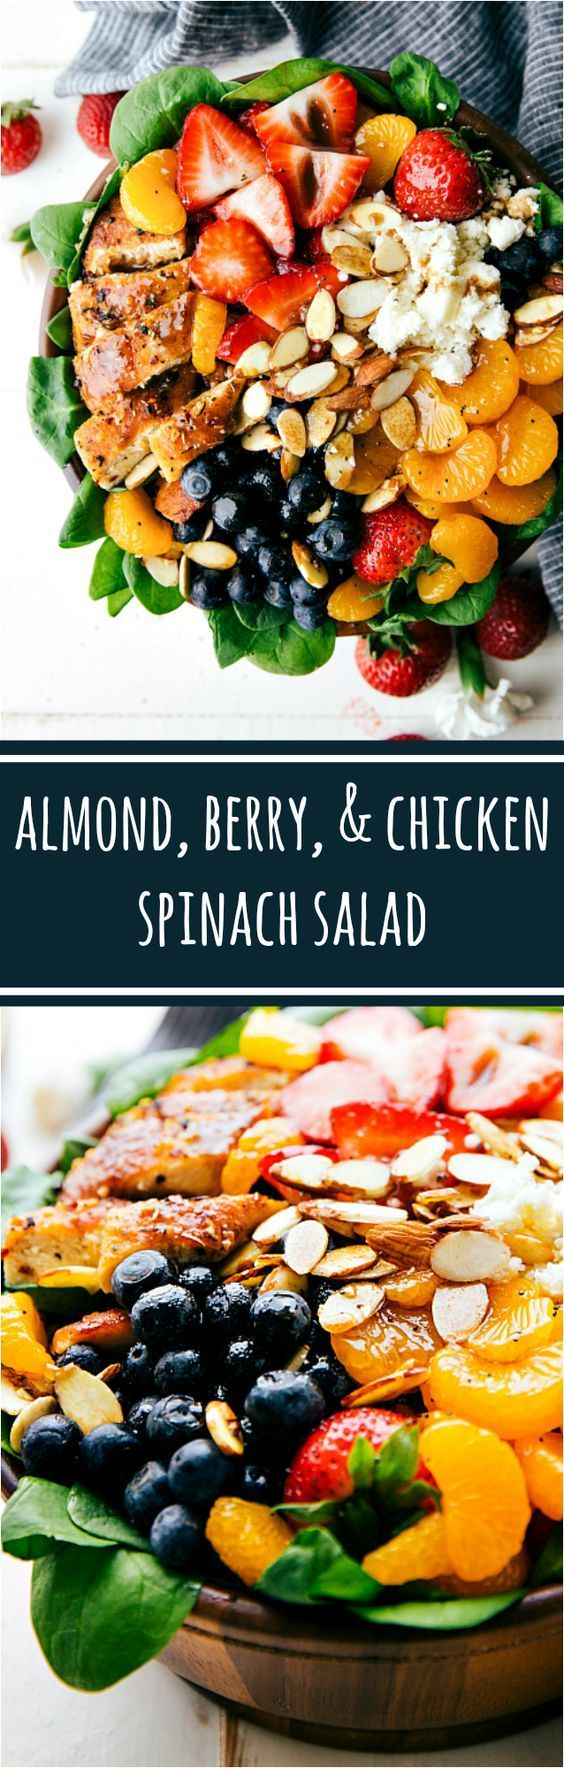 Almond, Berry, and Chicken Spinach Salad | Recipe